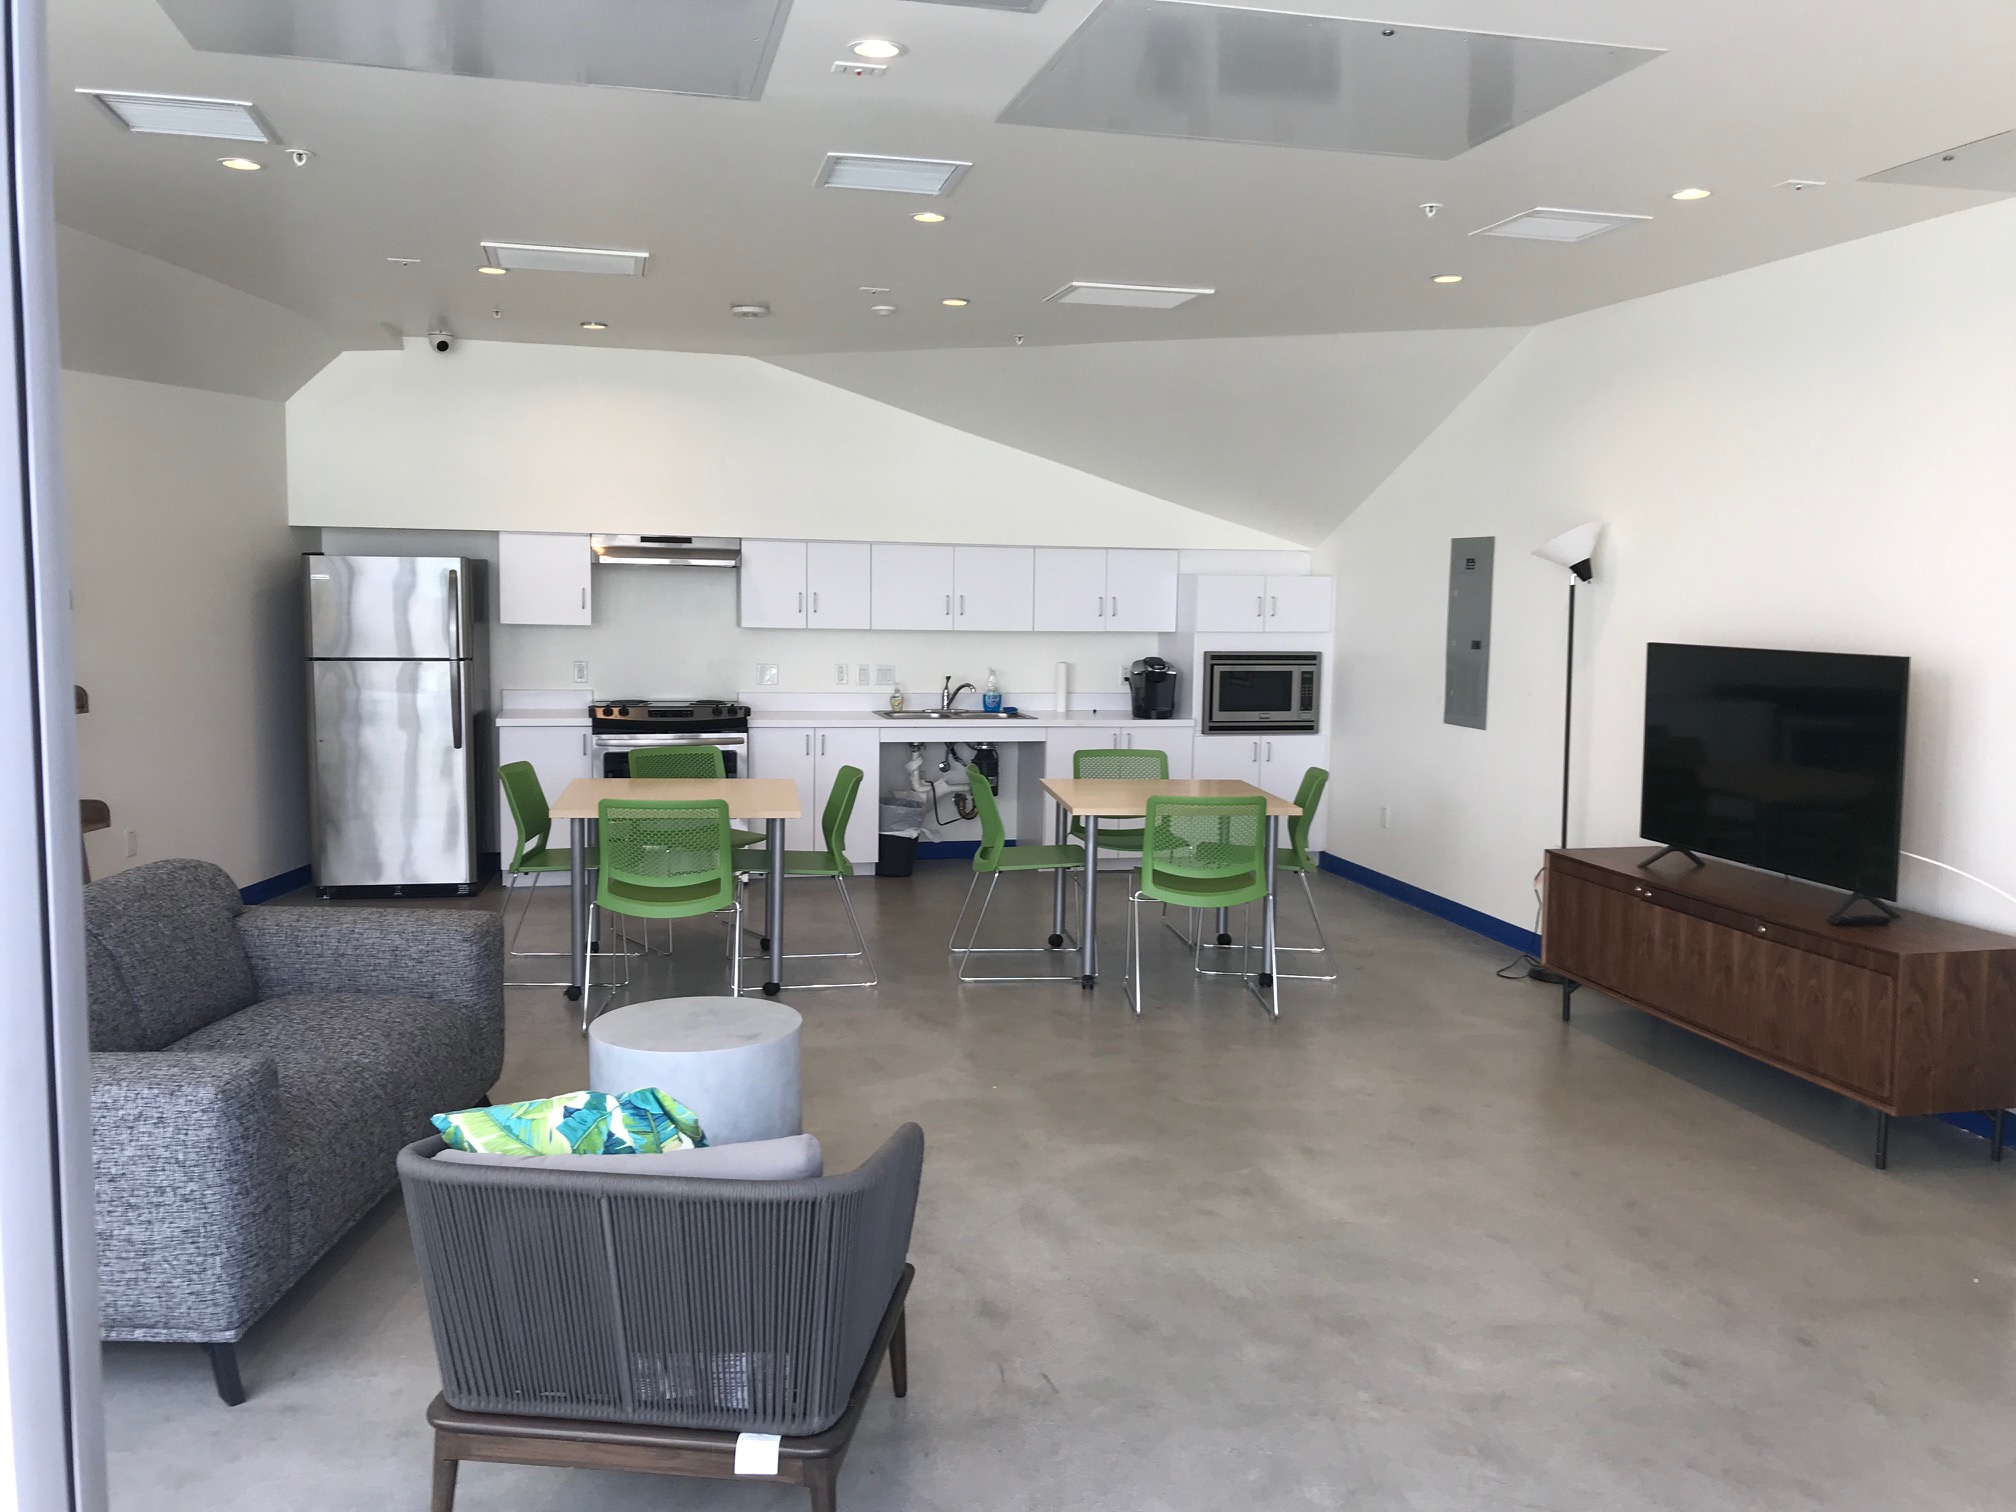 Interior view of a community room at King 1101 Apartments showing couches, tables, television and a kitchen area with a refigerator, stove, sink and microwave.